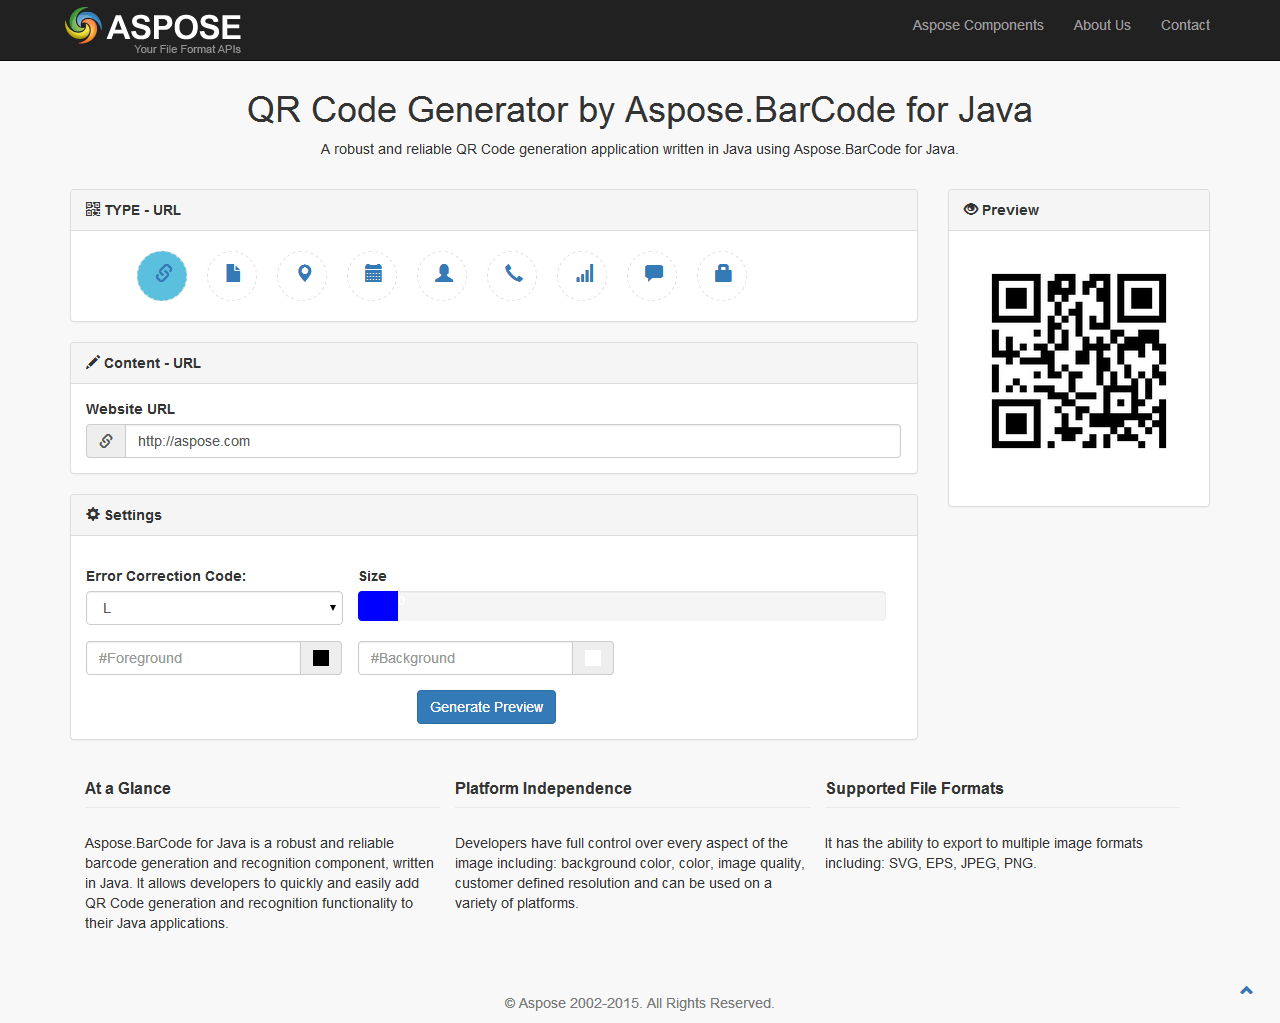 QR Code Generator by Aspose BarCode for Java